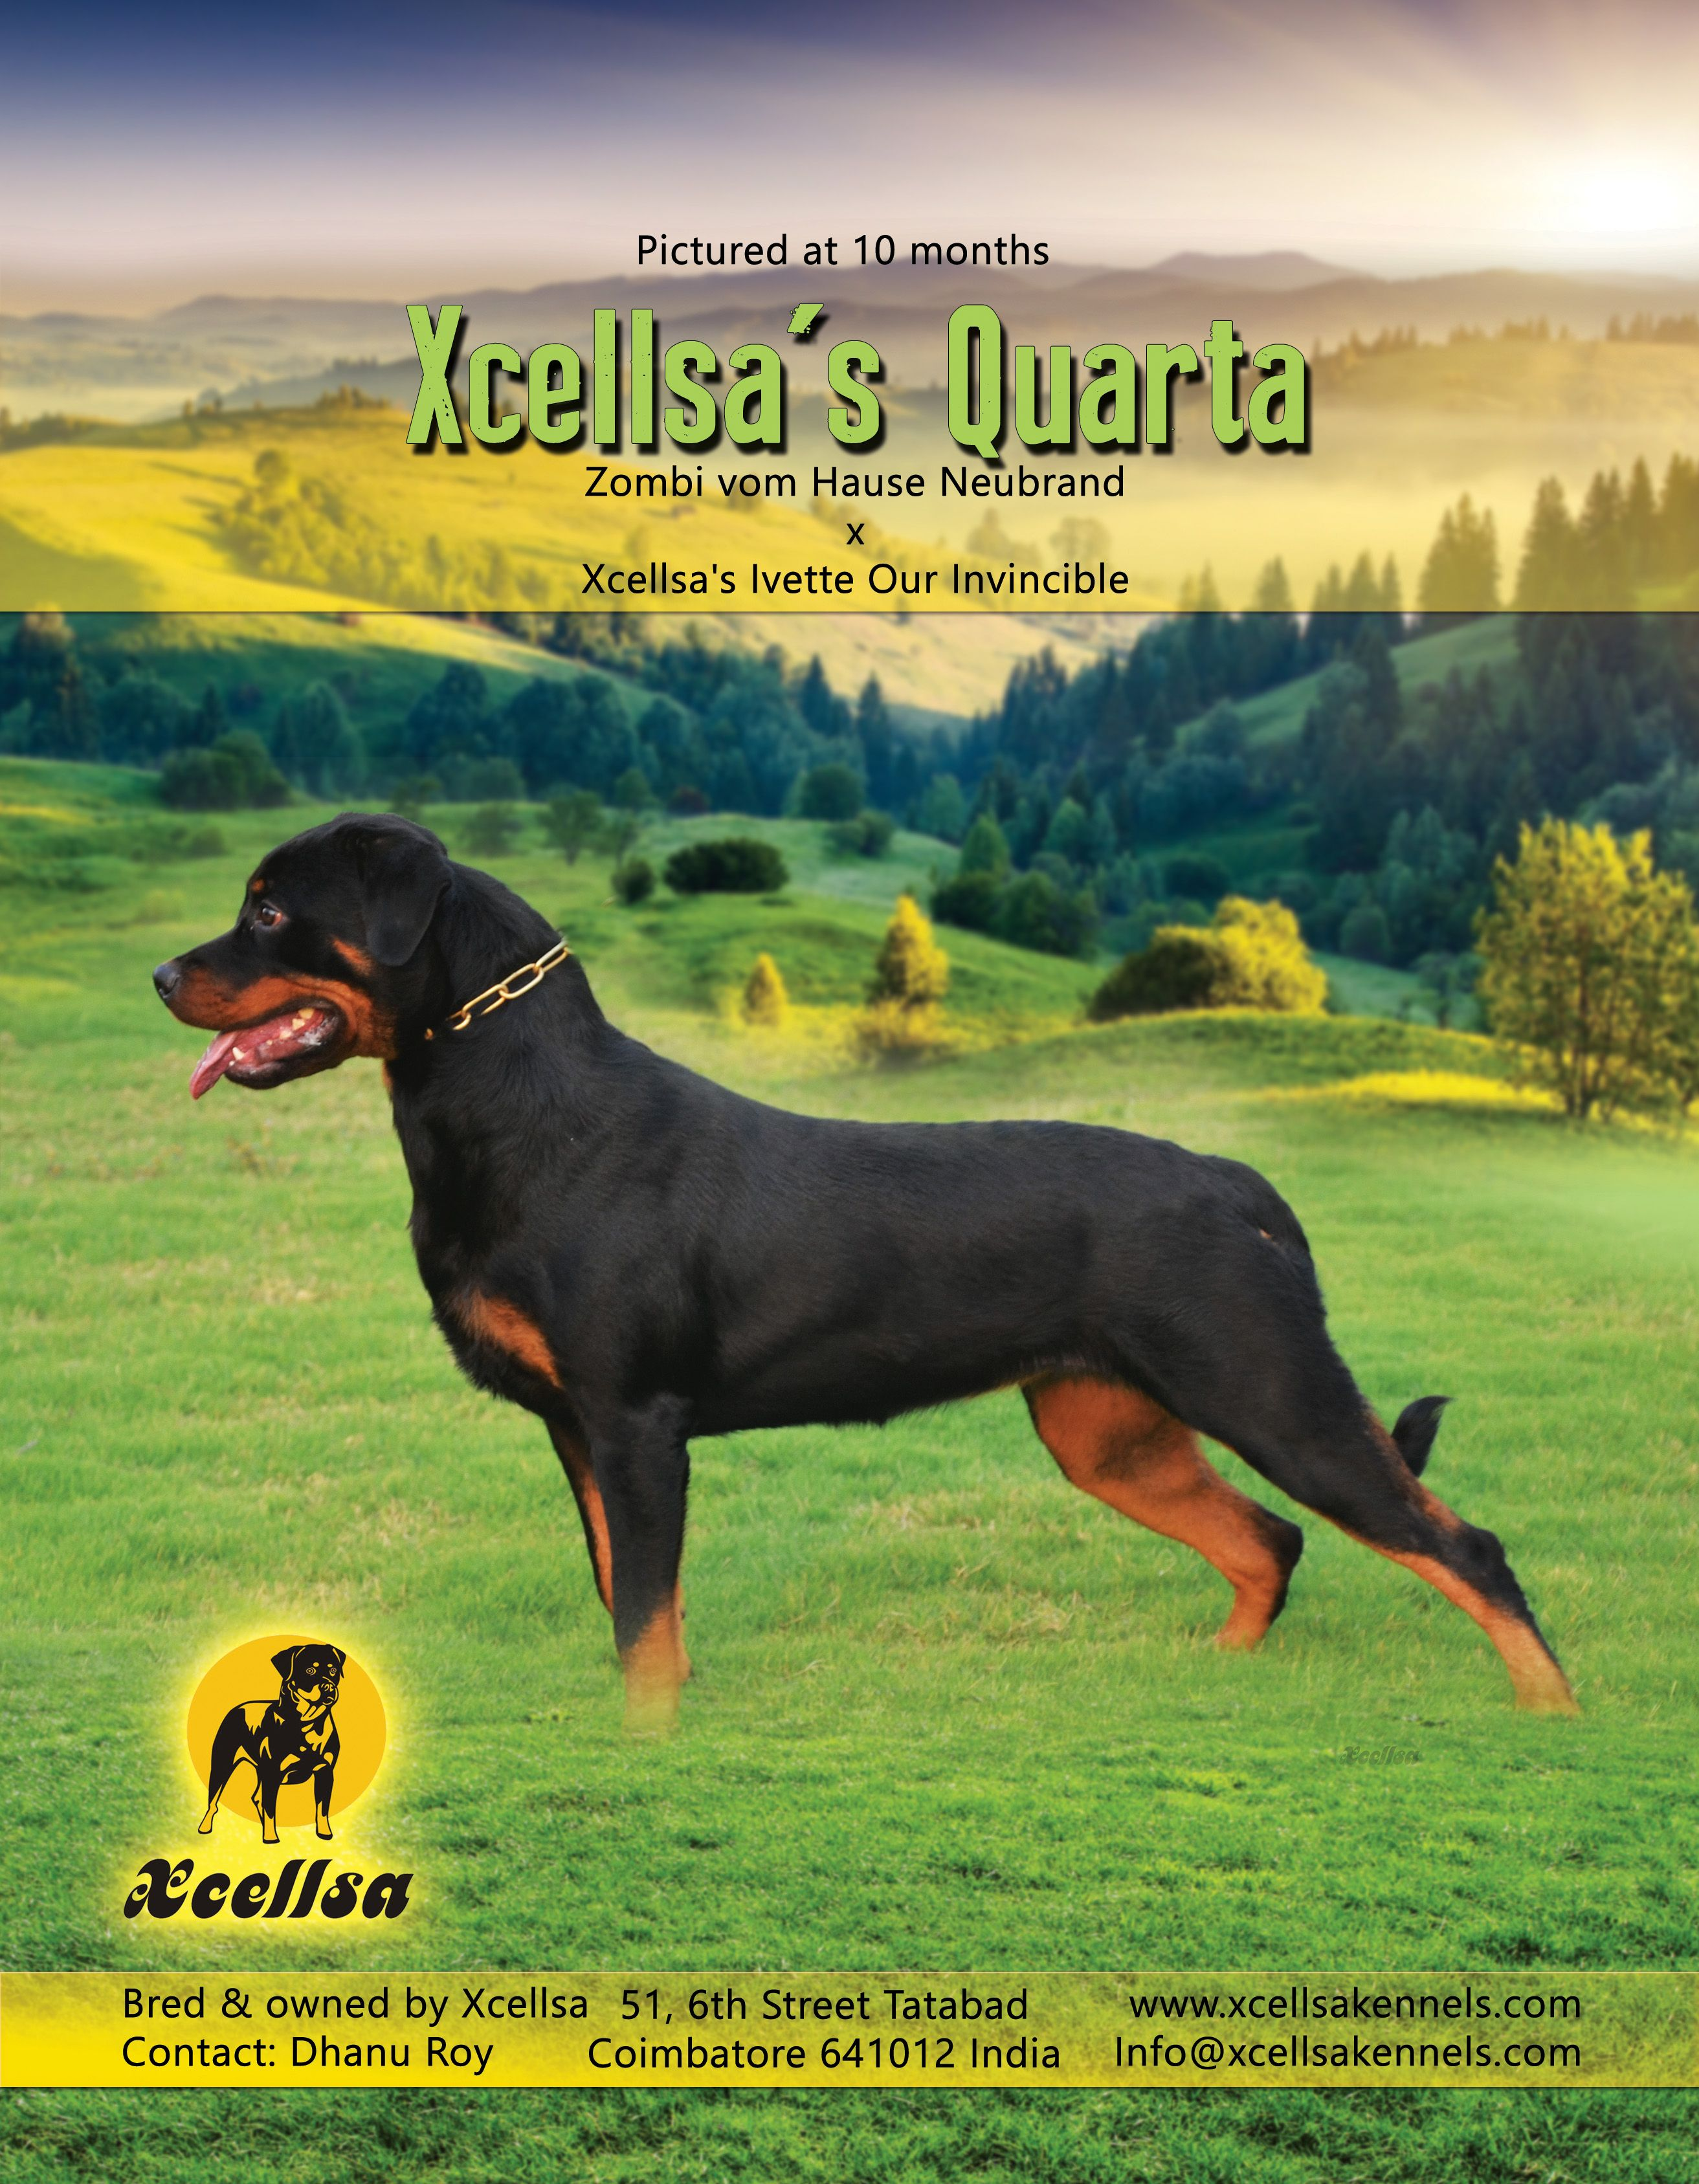 Xcellsa S Quarta Bred Owned By Xcellsa Contact Dhanu Roy India